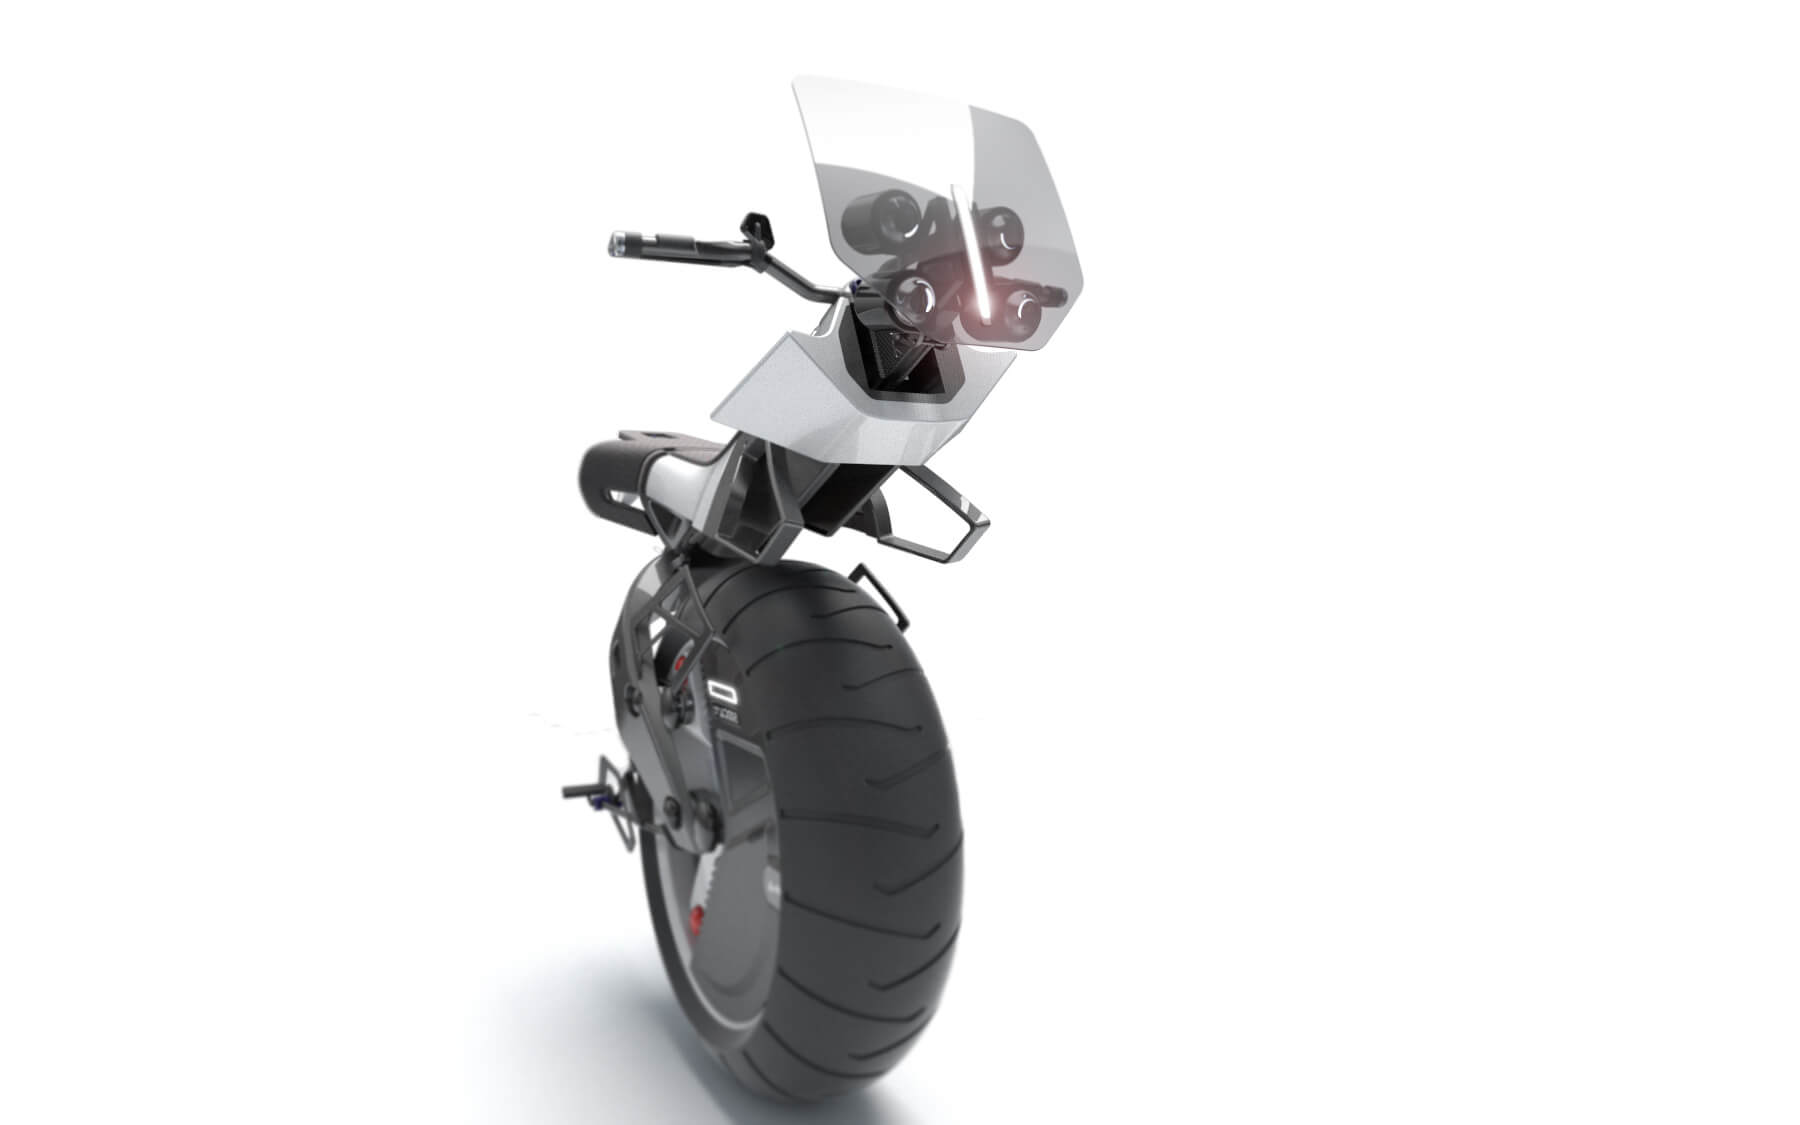 a monobike, white, with a single wheel, side view